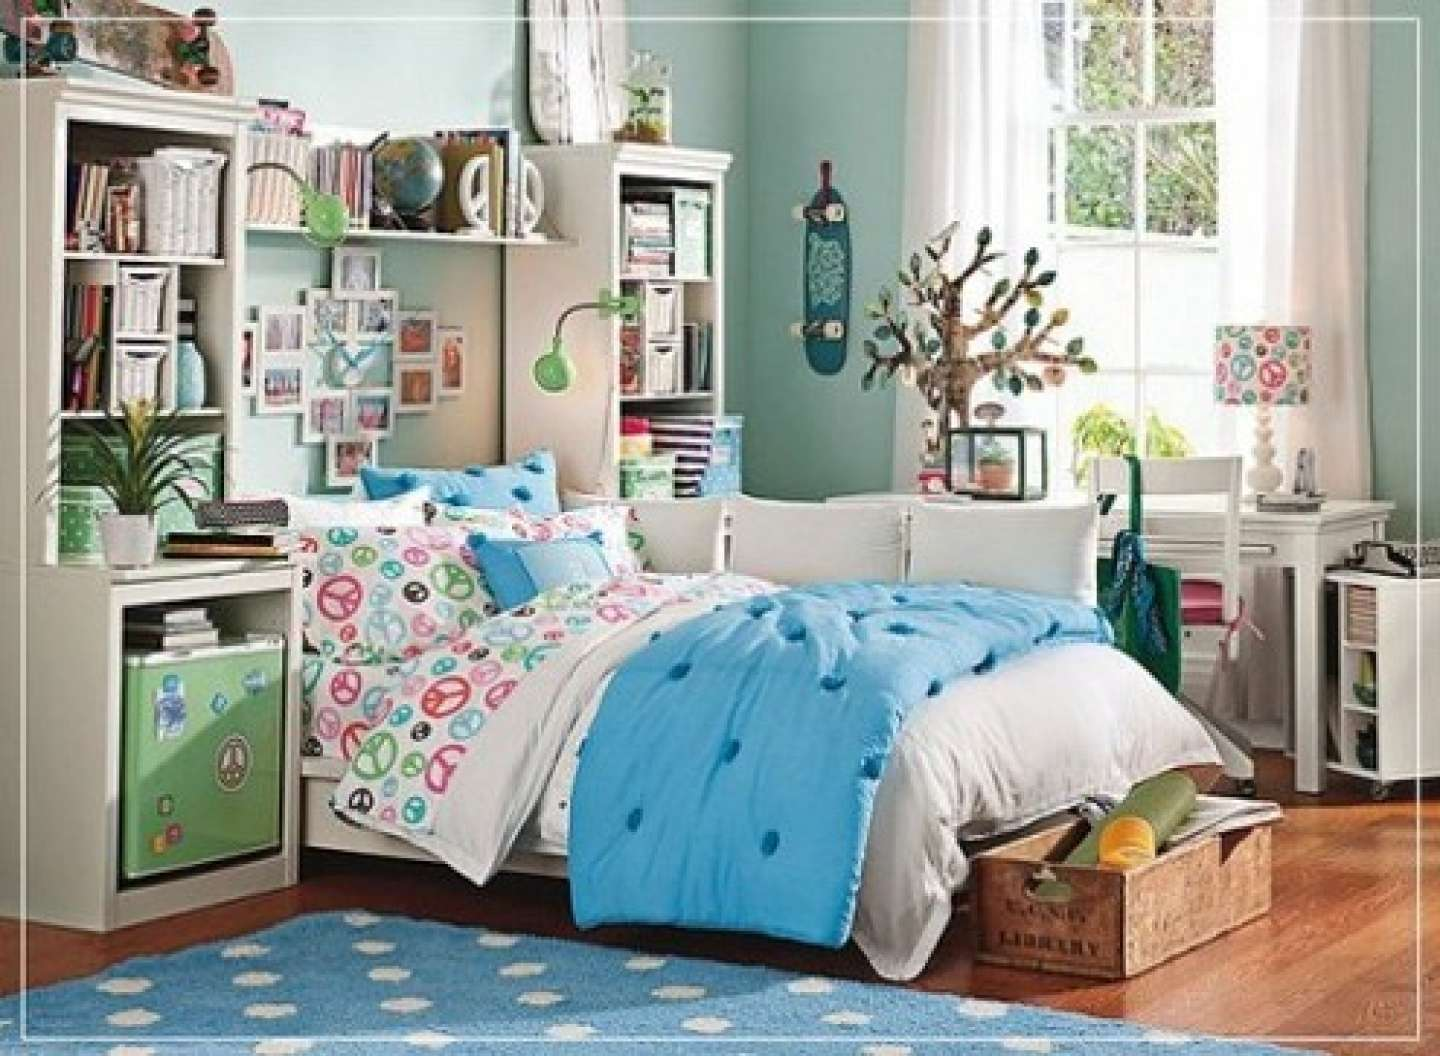 Ideas Decor Decorating Girl Bedroom Great Teenage